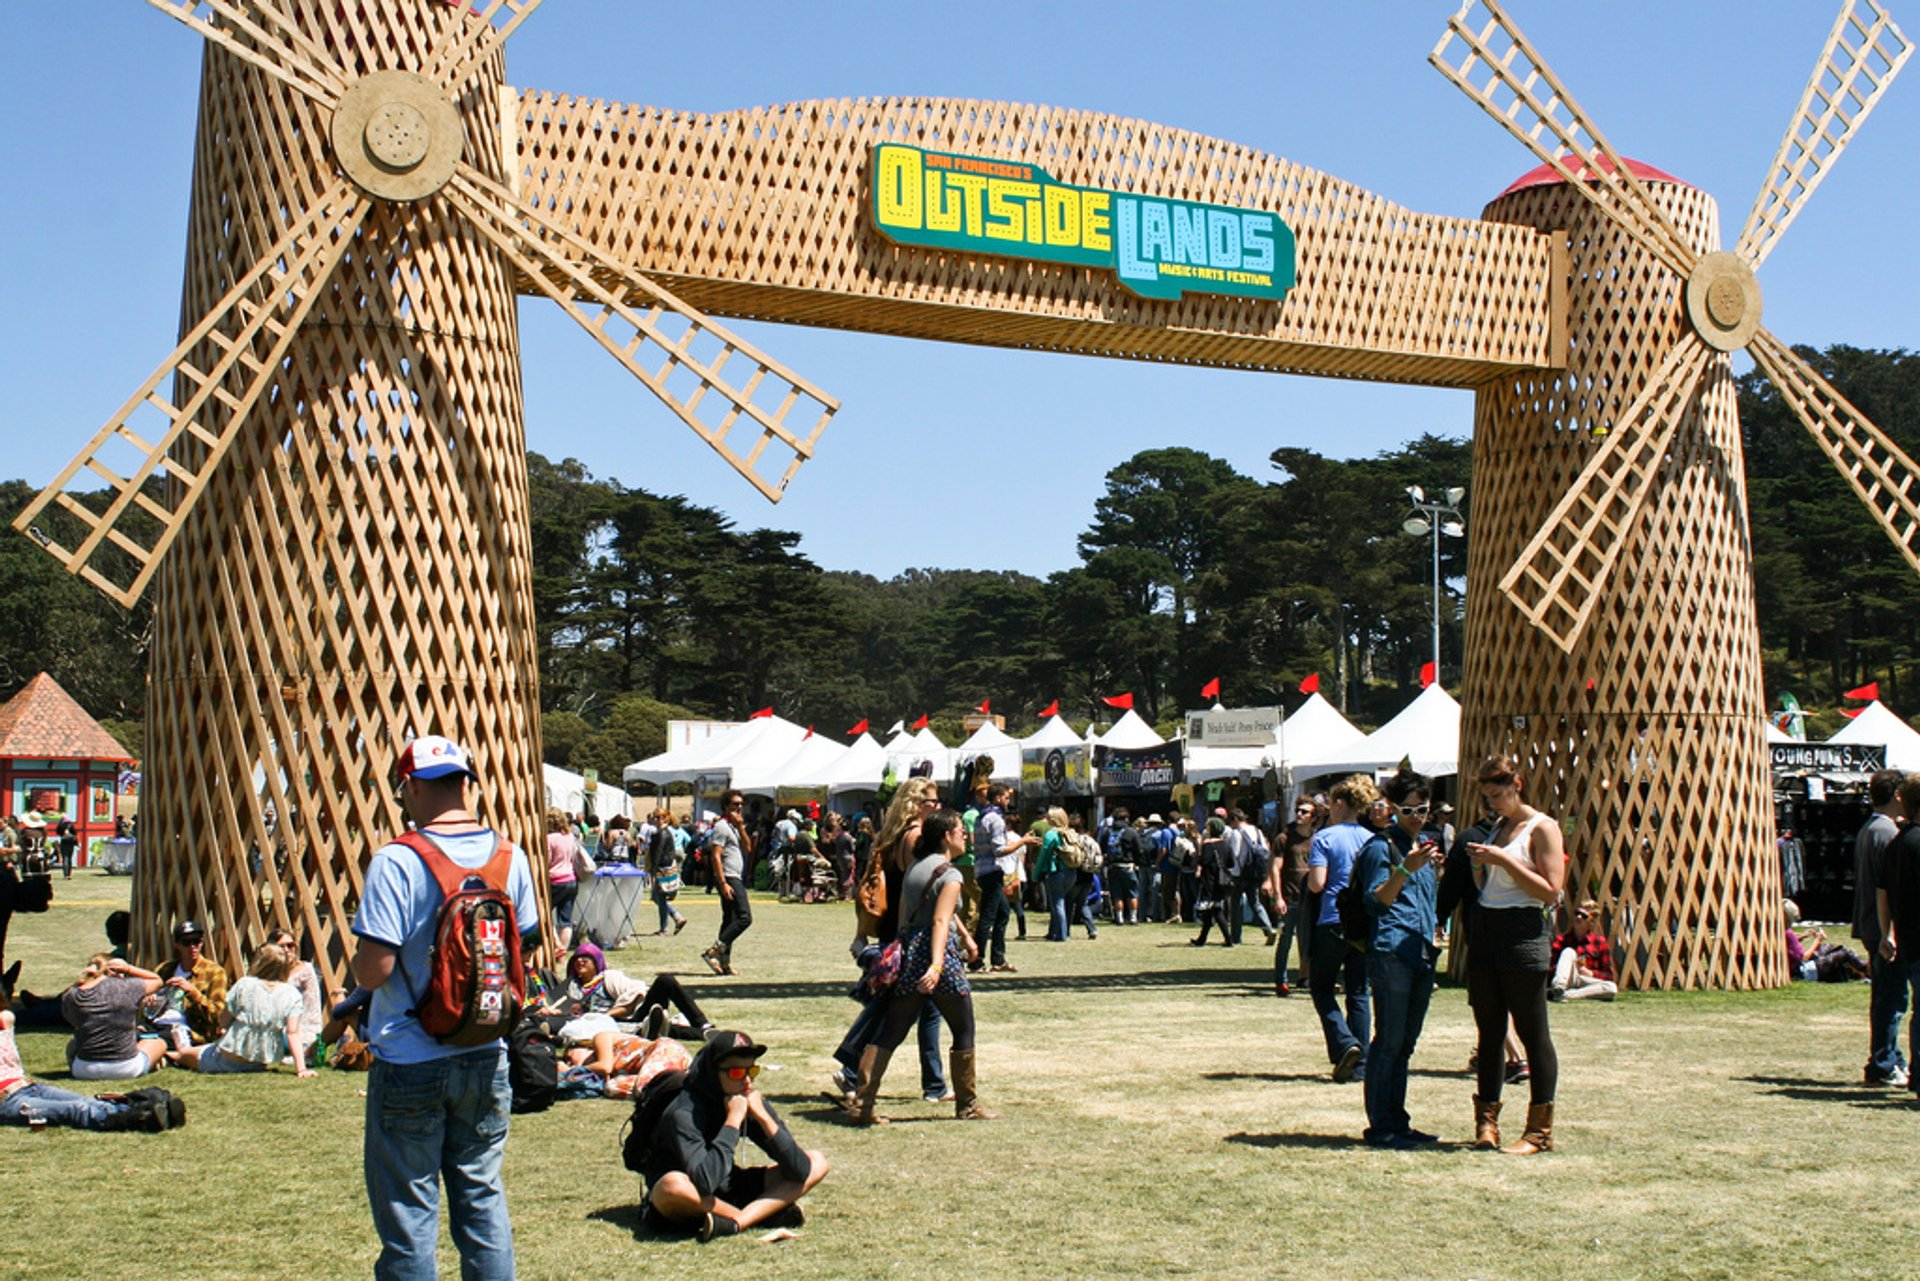 Outside Lands Music and Art Festival in San Francisco 2020 - Best Time